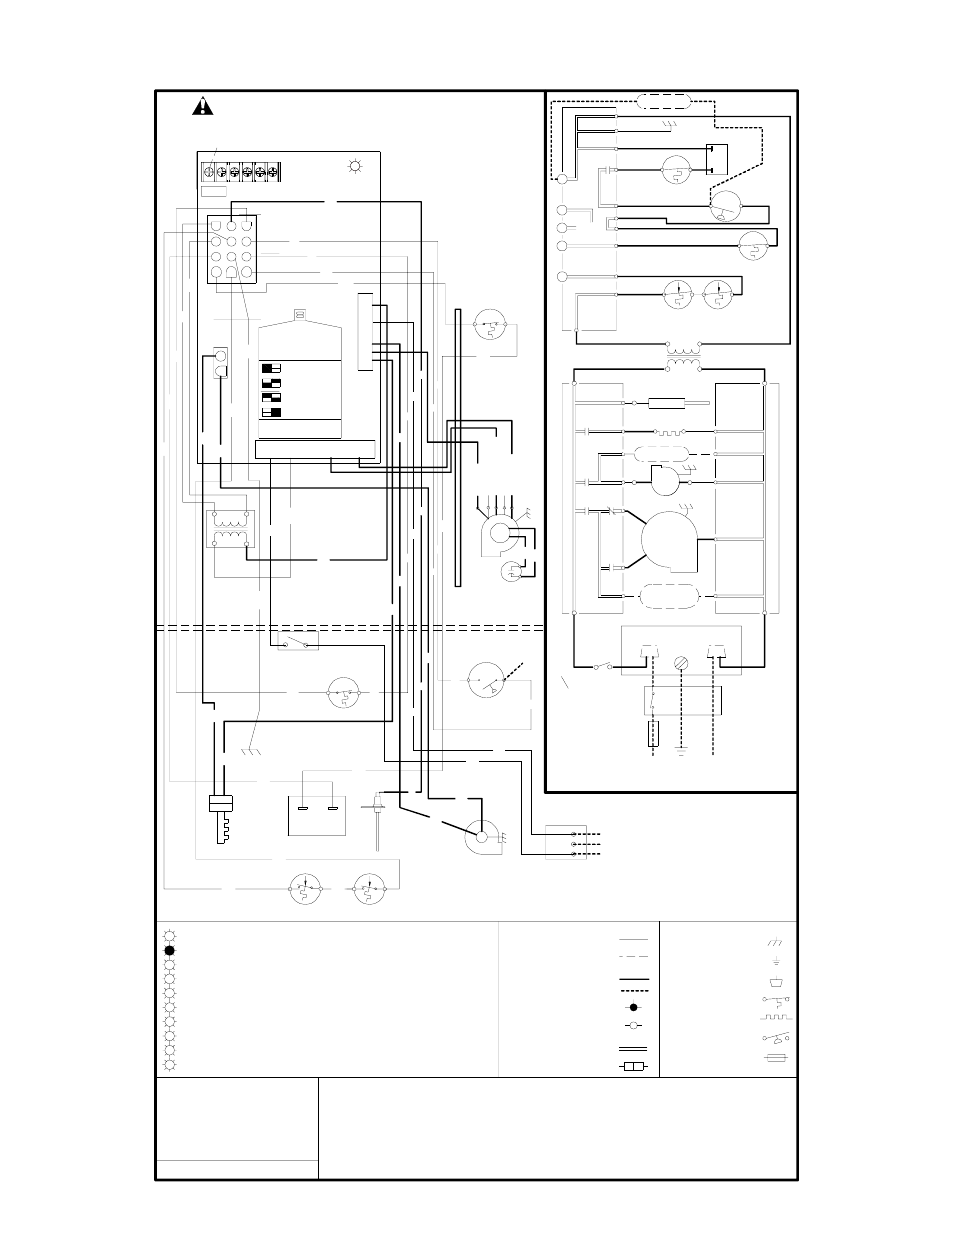 gms8  gds8  ghs8  wiring diagram for goodman mfg ghs8 user Goodman Furnace Wiring Diagram Goodman Heat Kit Wiring Diagram